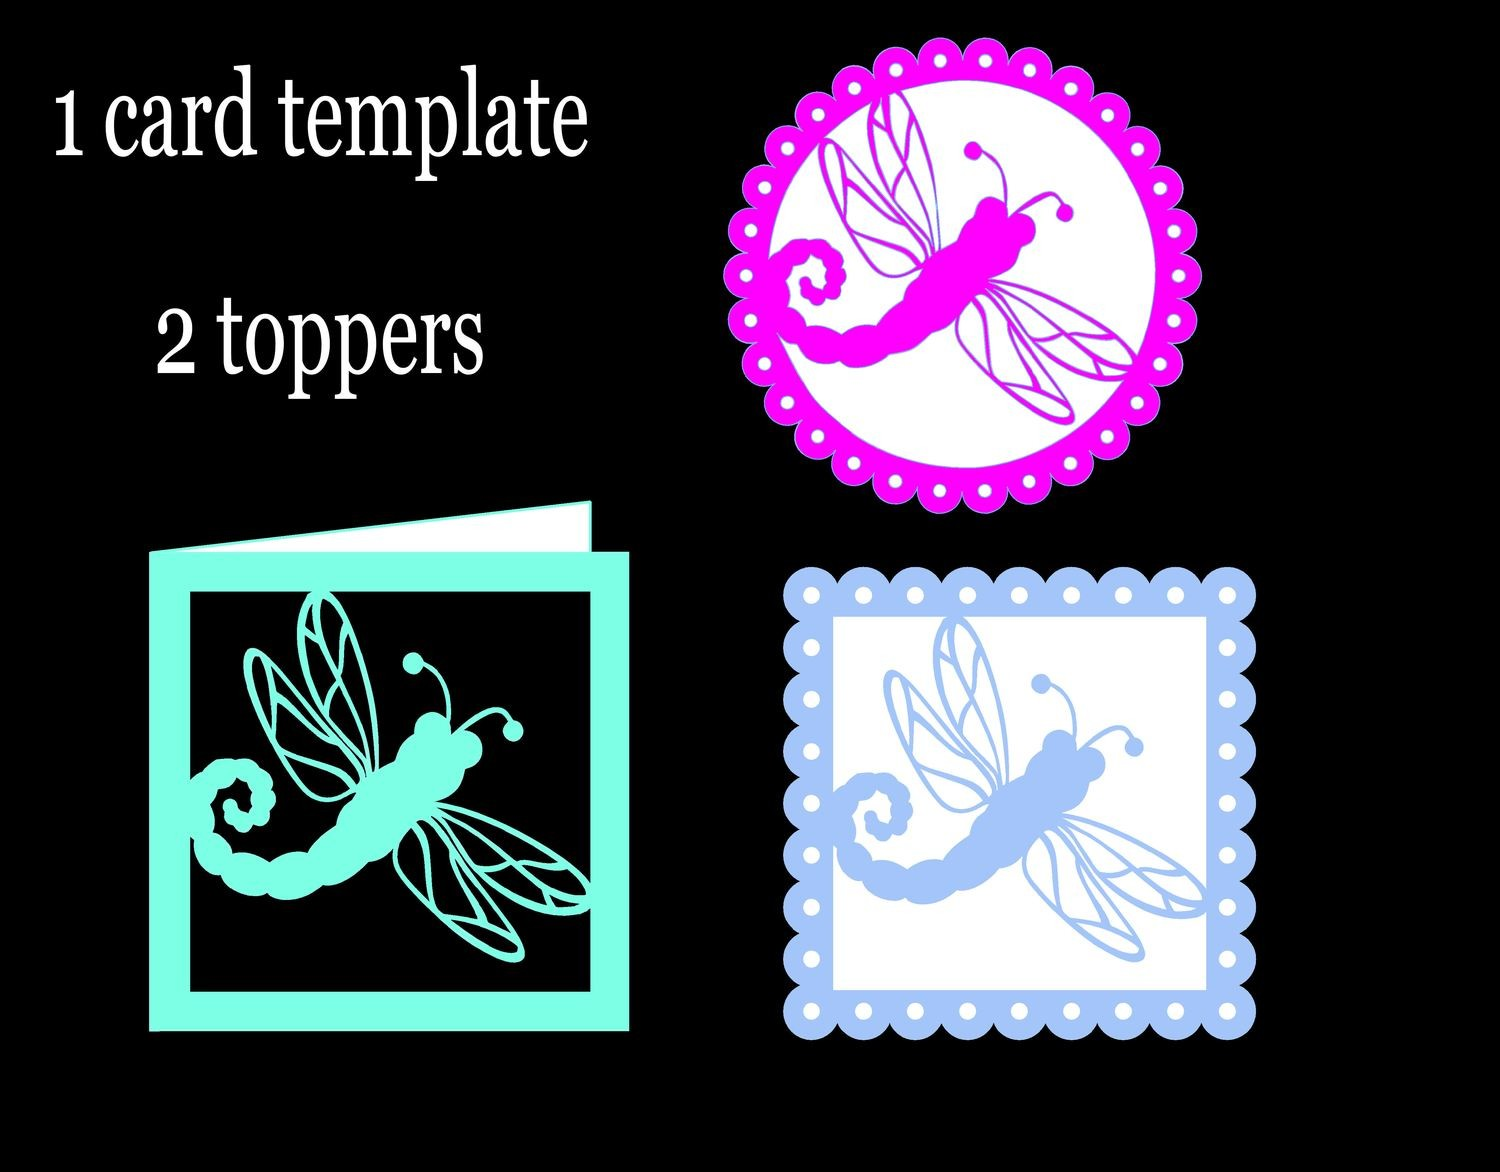 Dragonfly Card Template and 2 Toppers